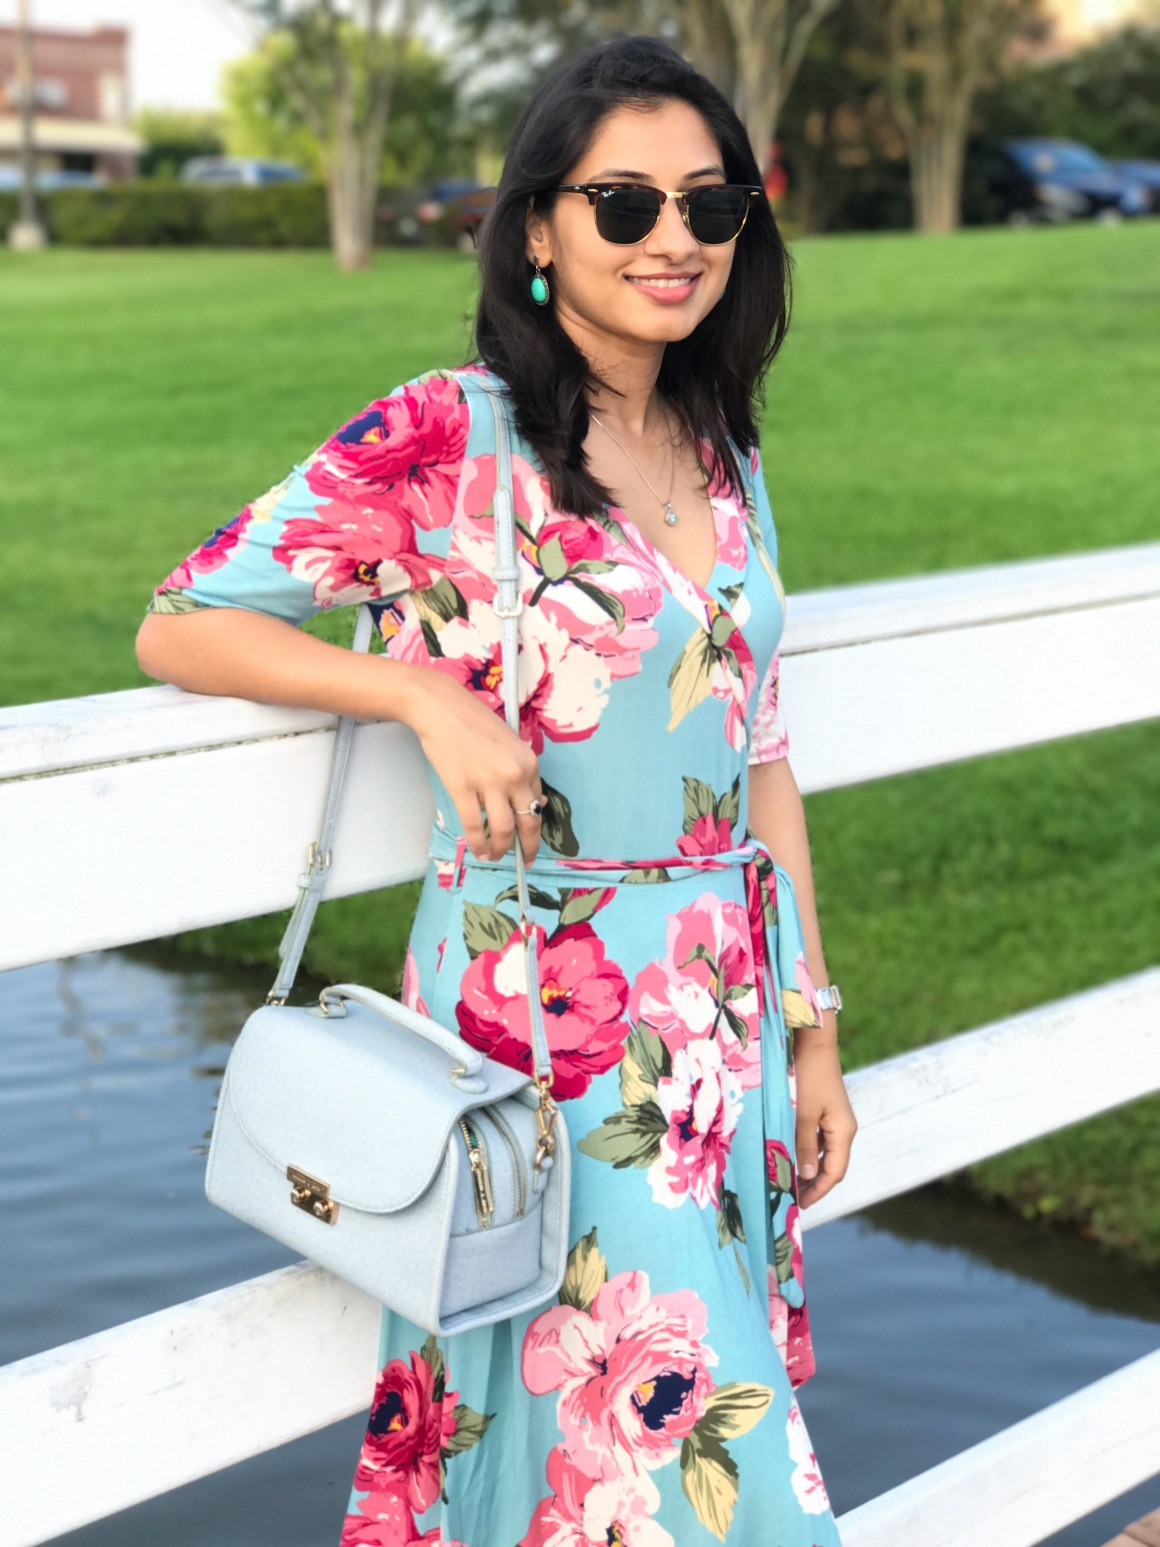 Floral High-Low Dress , Charles & Keith bag